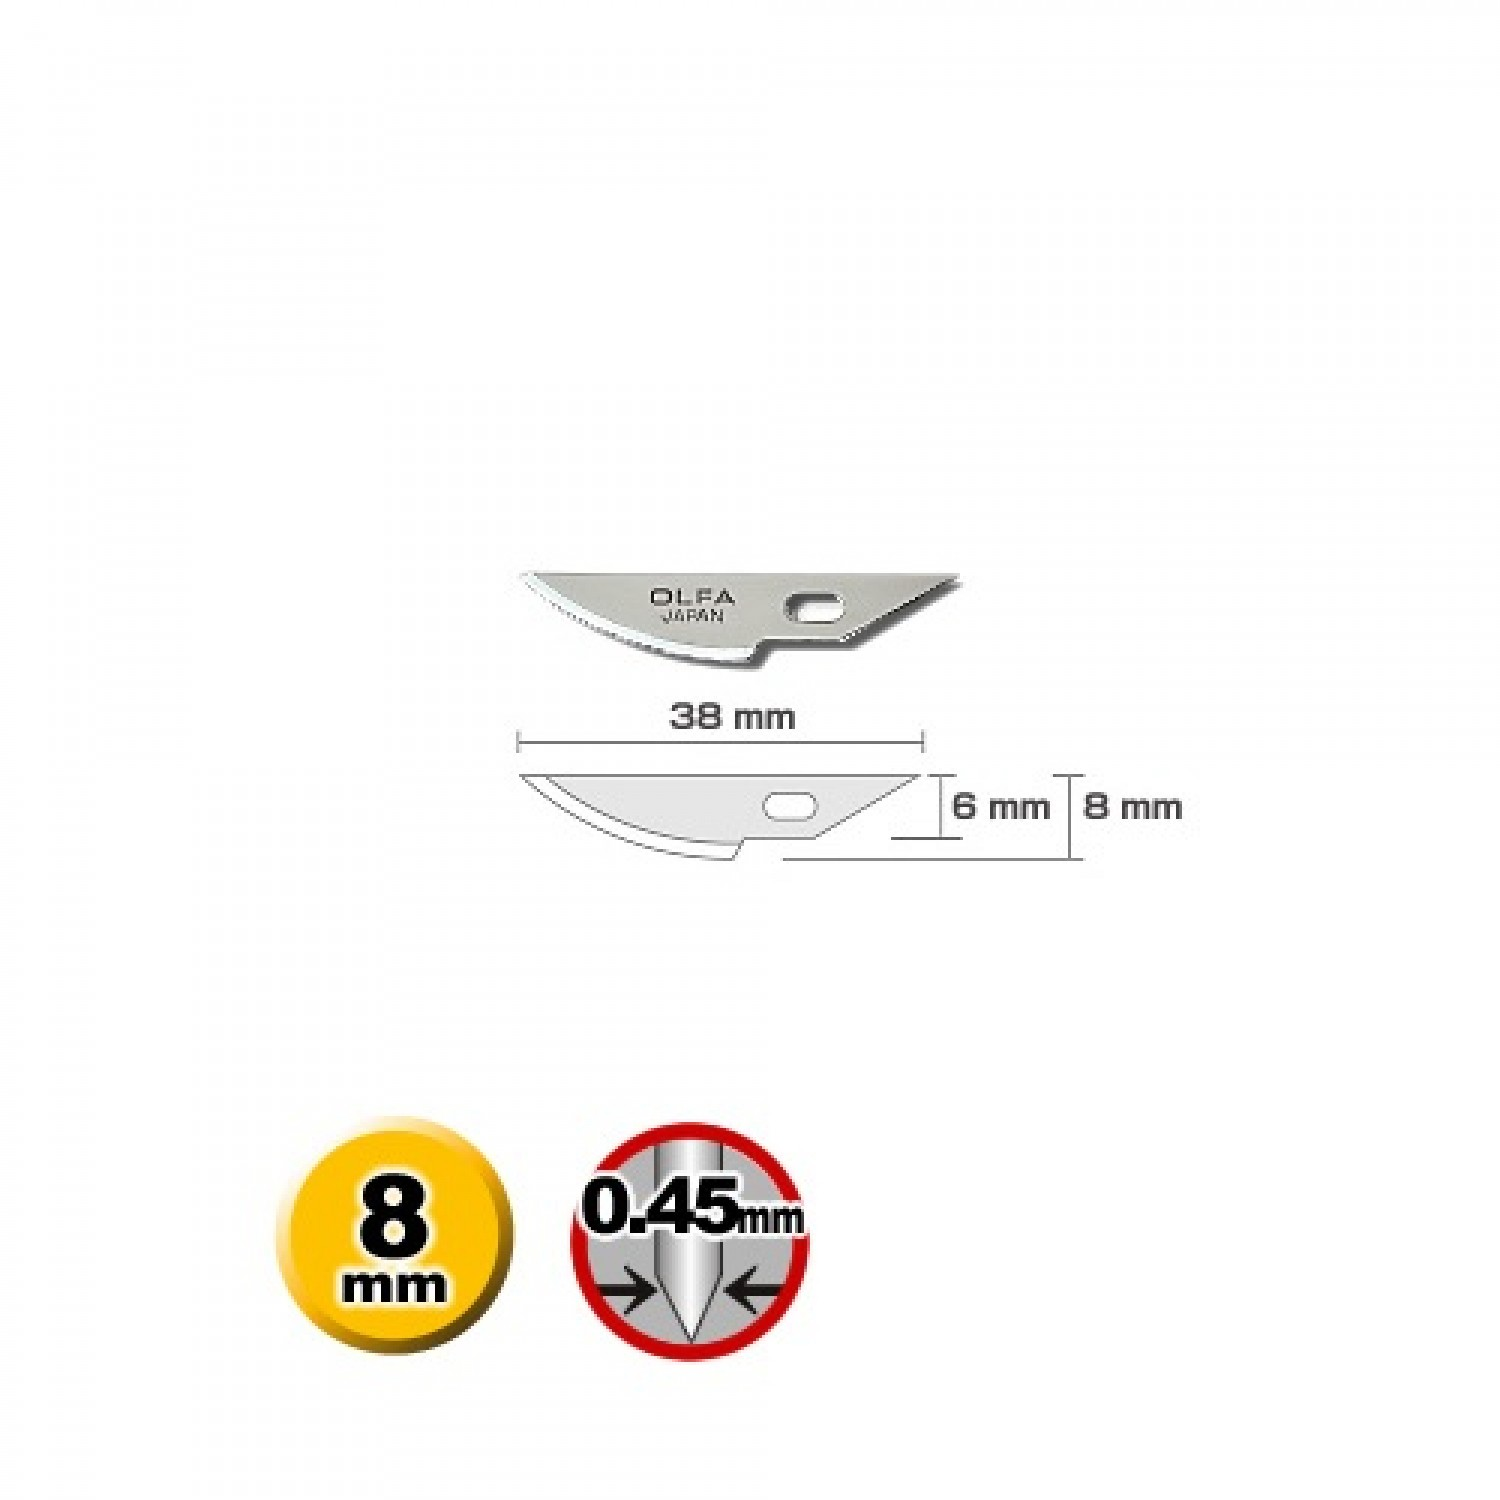 Olfa KB4-R/5 Curved Carving Blade Dimensions